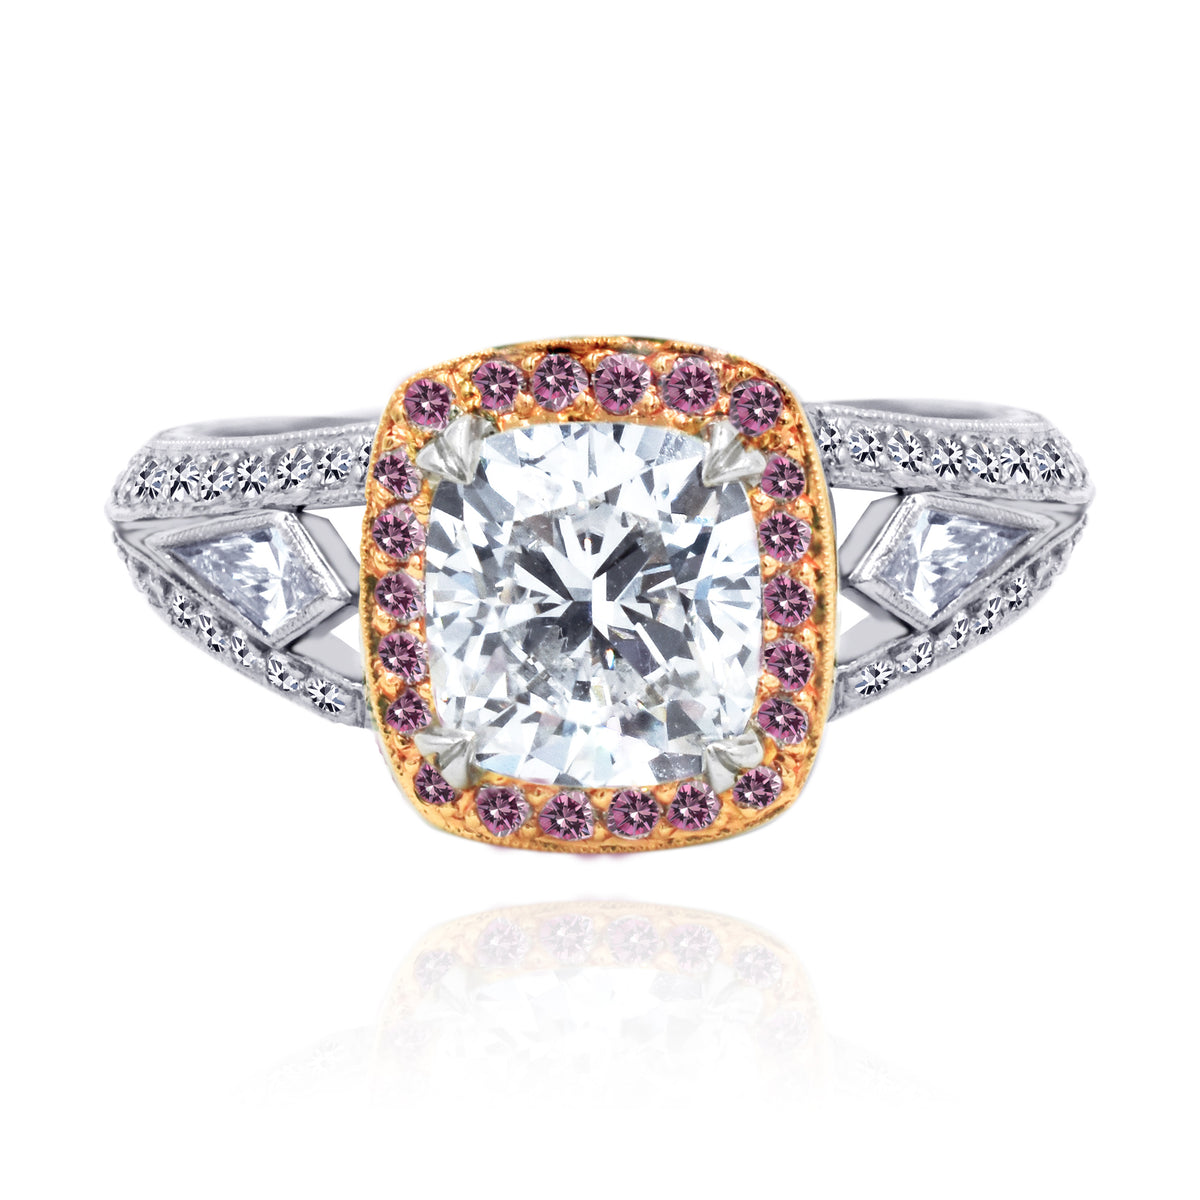 Beaudry Platinum and 18K Rose Gold Cushion Cut Diamond Ring